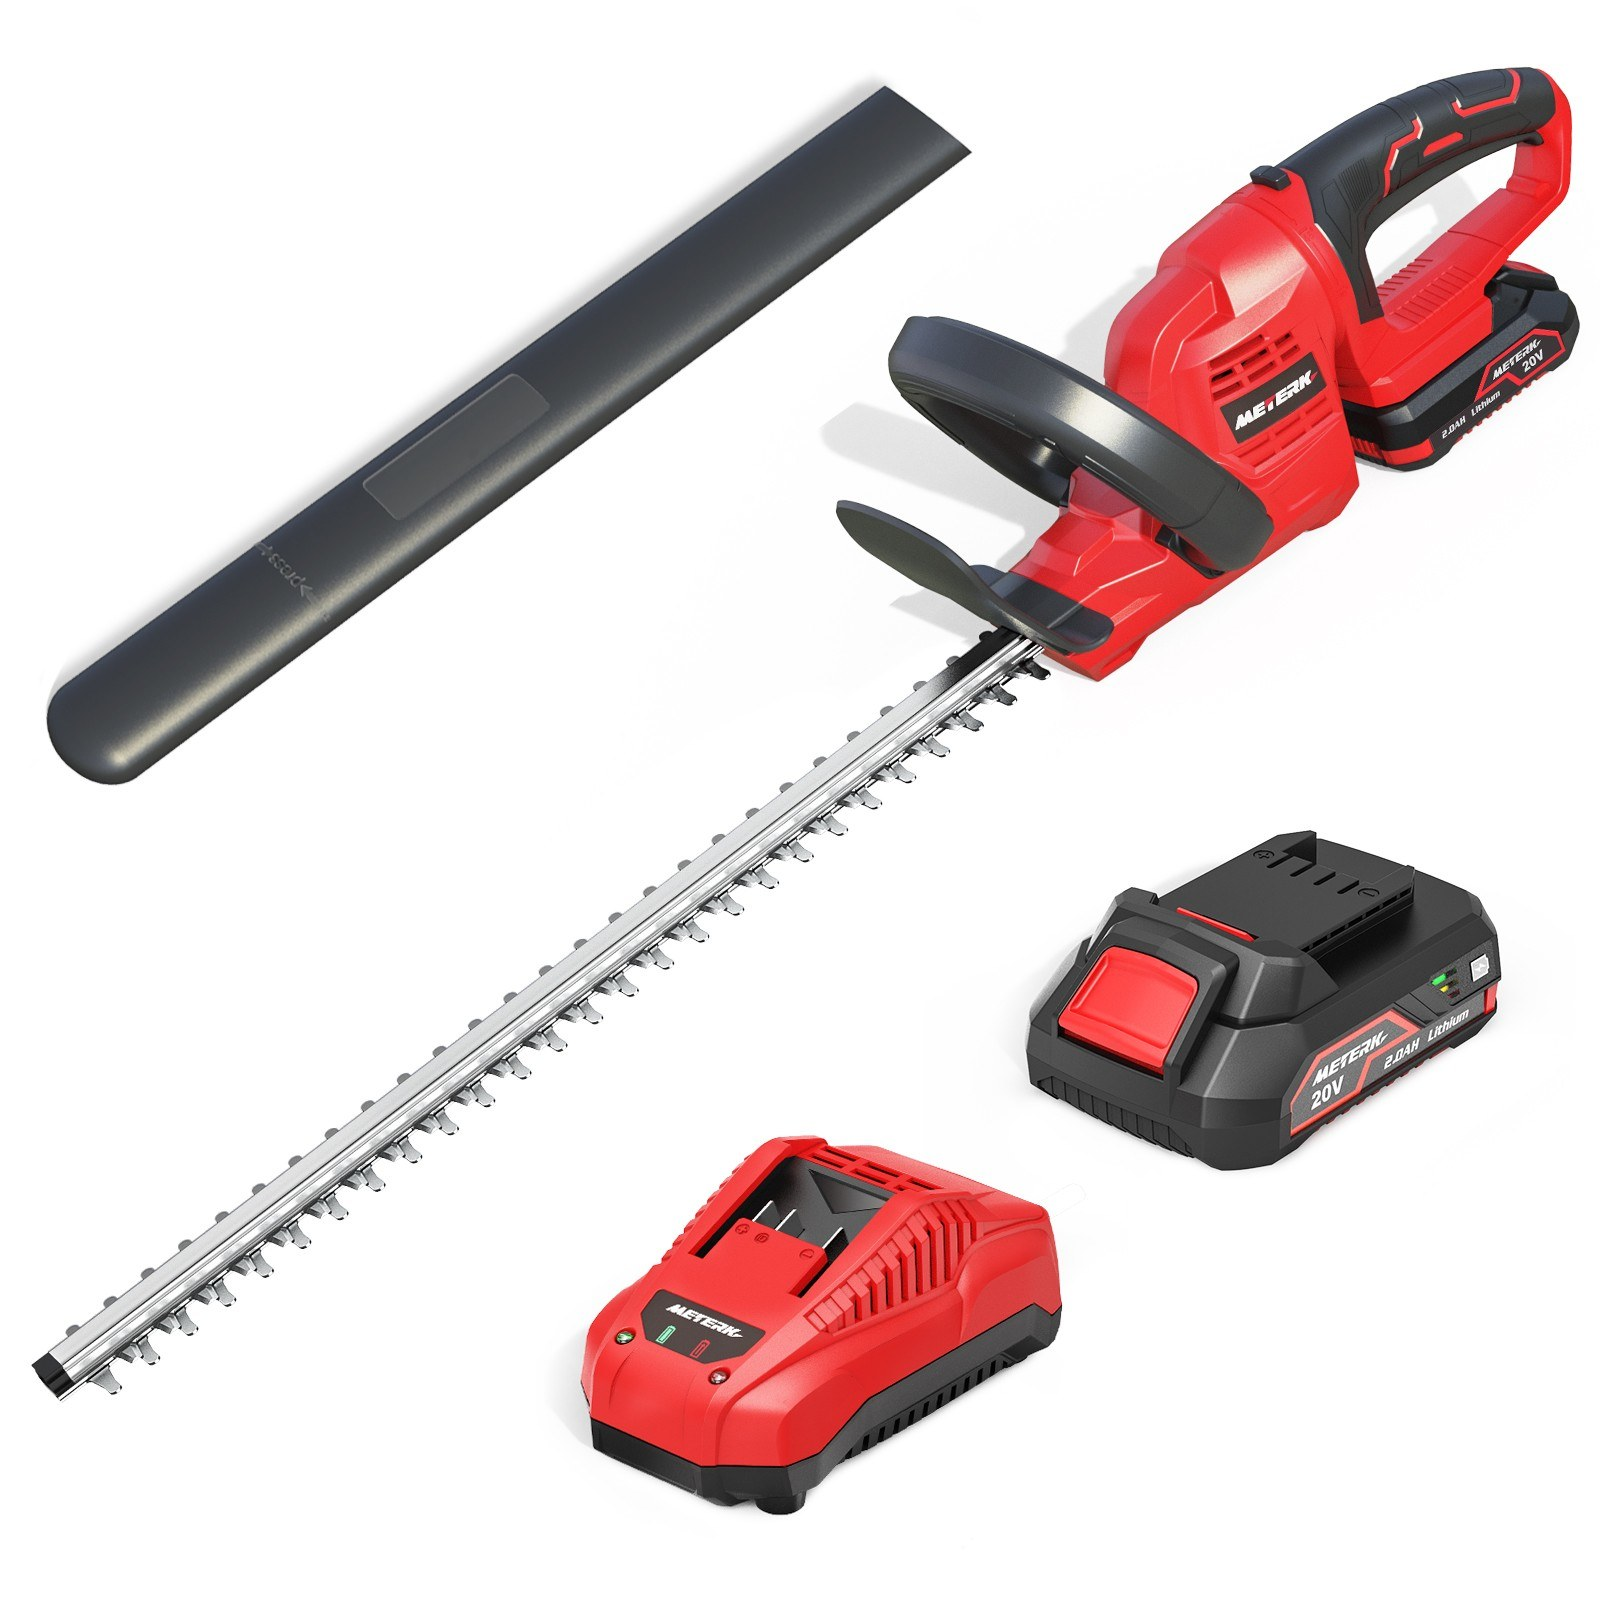 Cafago - 63% OFF METERK 20V Cordless Hedge Trimmer,free shipping+$86.34